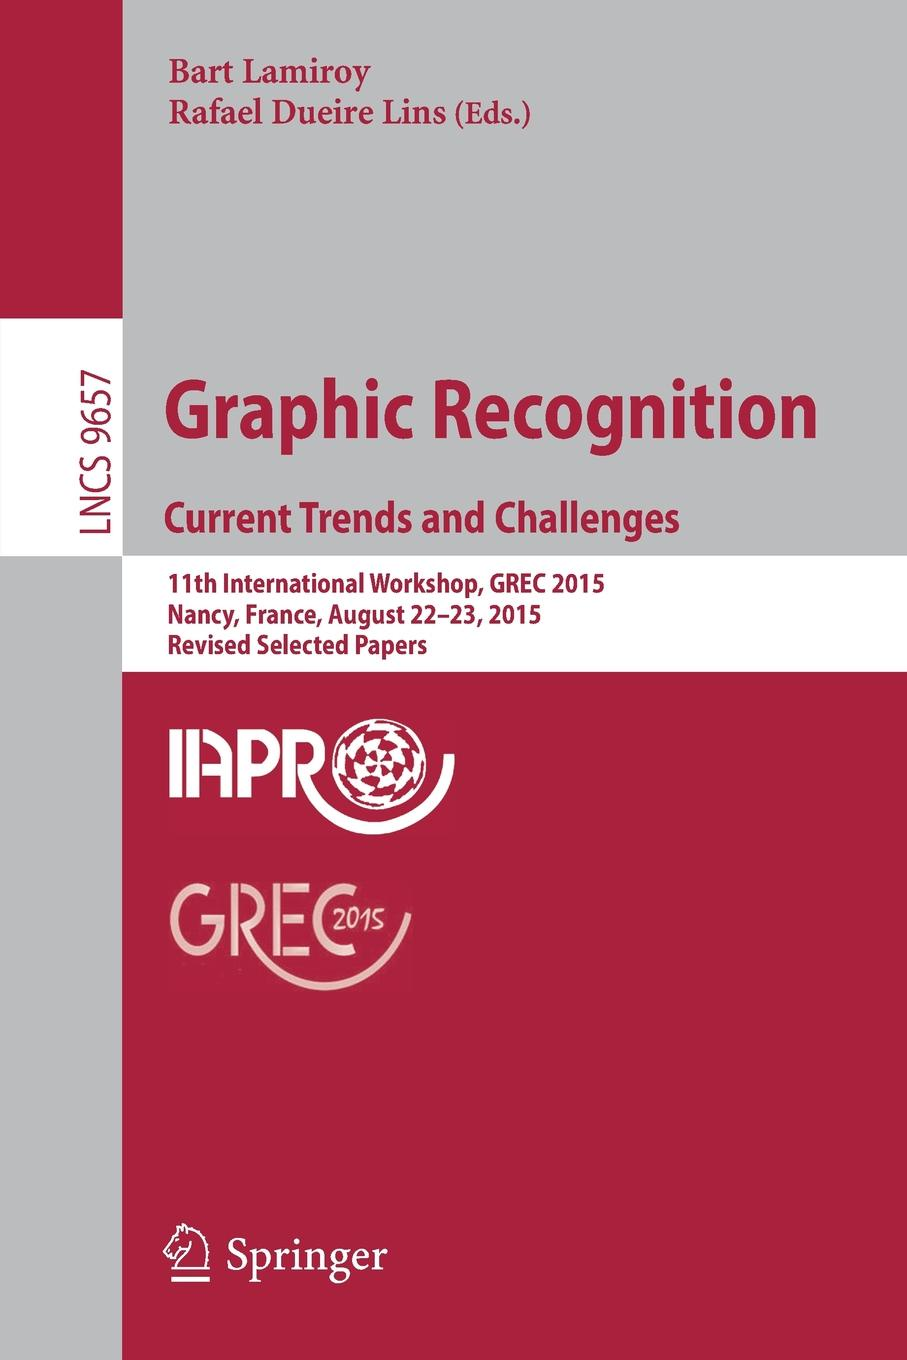 Graphic Recognition. Current Trends and Challenges. 11th International Workshop, GREC 2015, Nancy, France, August 22-23, 2015, Revised Selected Papers цена в Москве и Питере